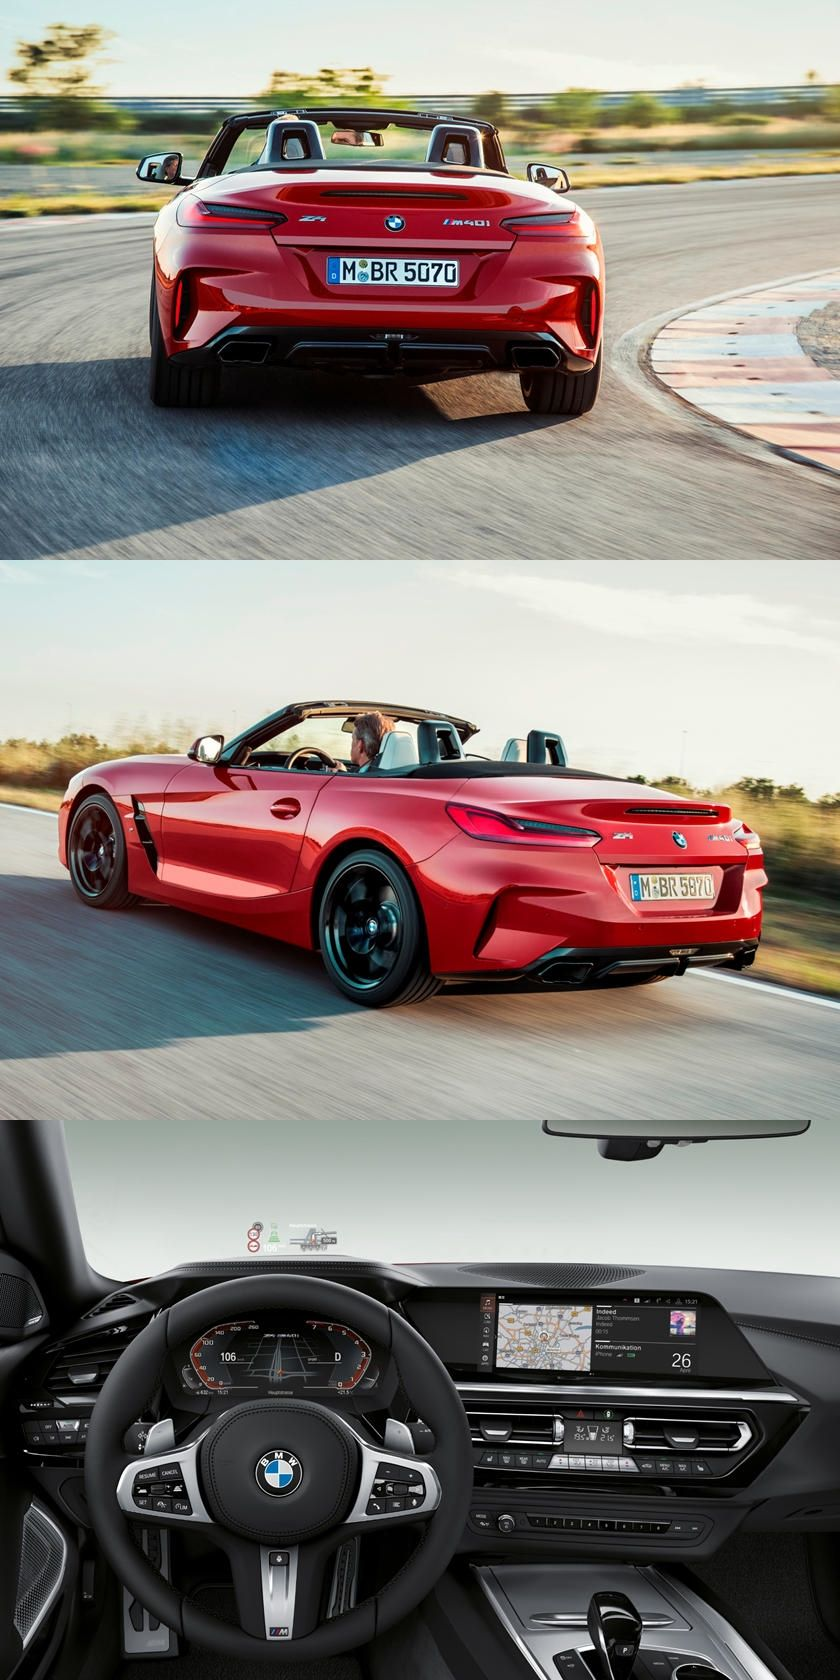 Toyota Supra Vs Bmw Z4 Who Won The 2019 Sales War It Was A Close Call But We Expect A Bigger Margin In 2020 In 2020 Bmw Z4 Toyota Supra Bmw